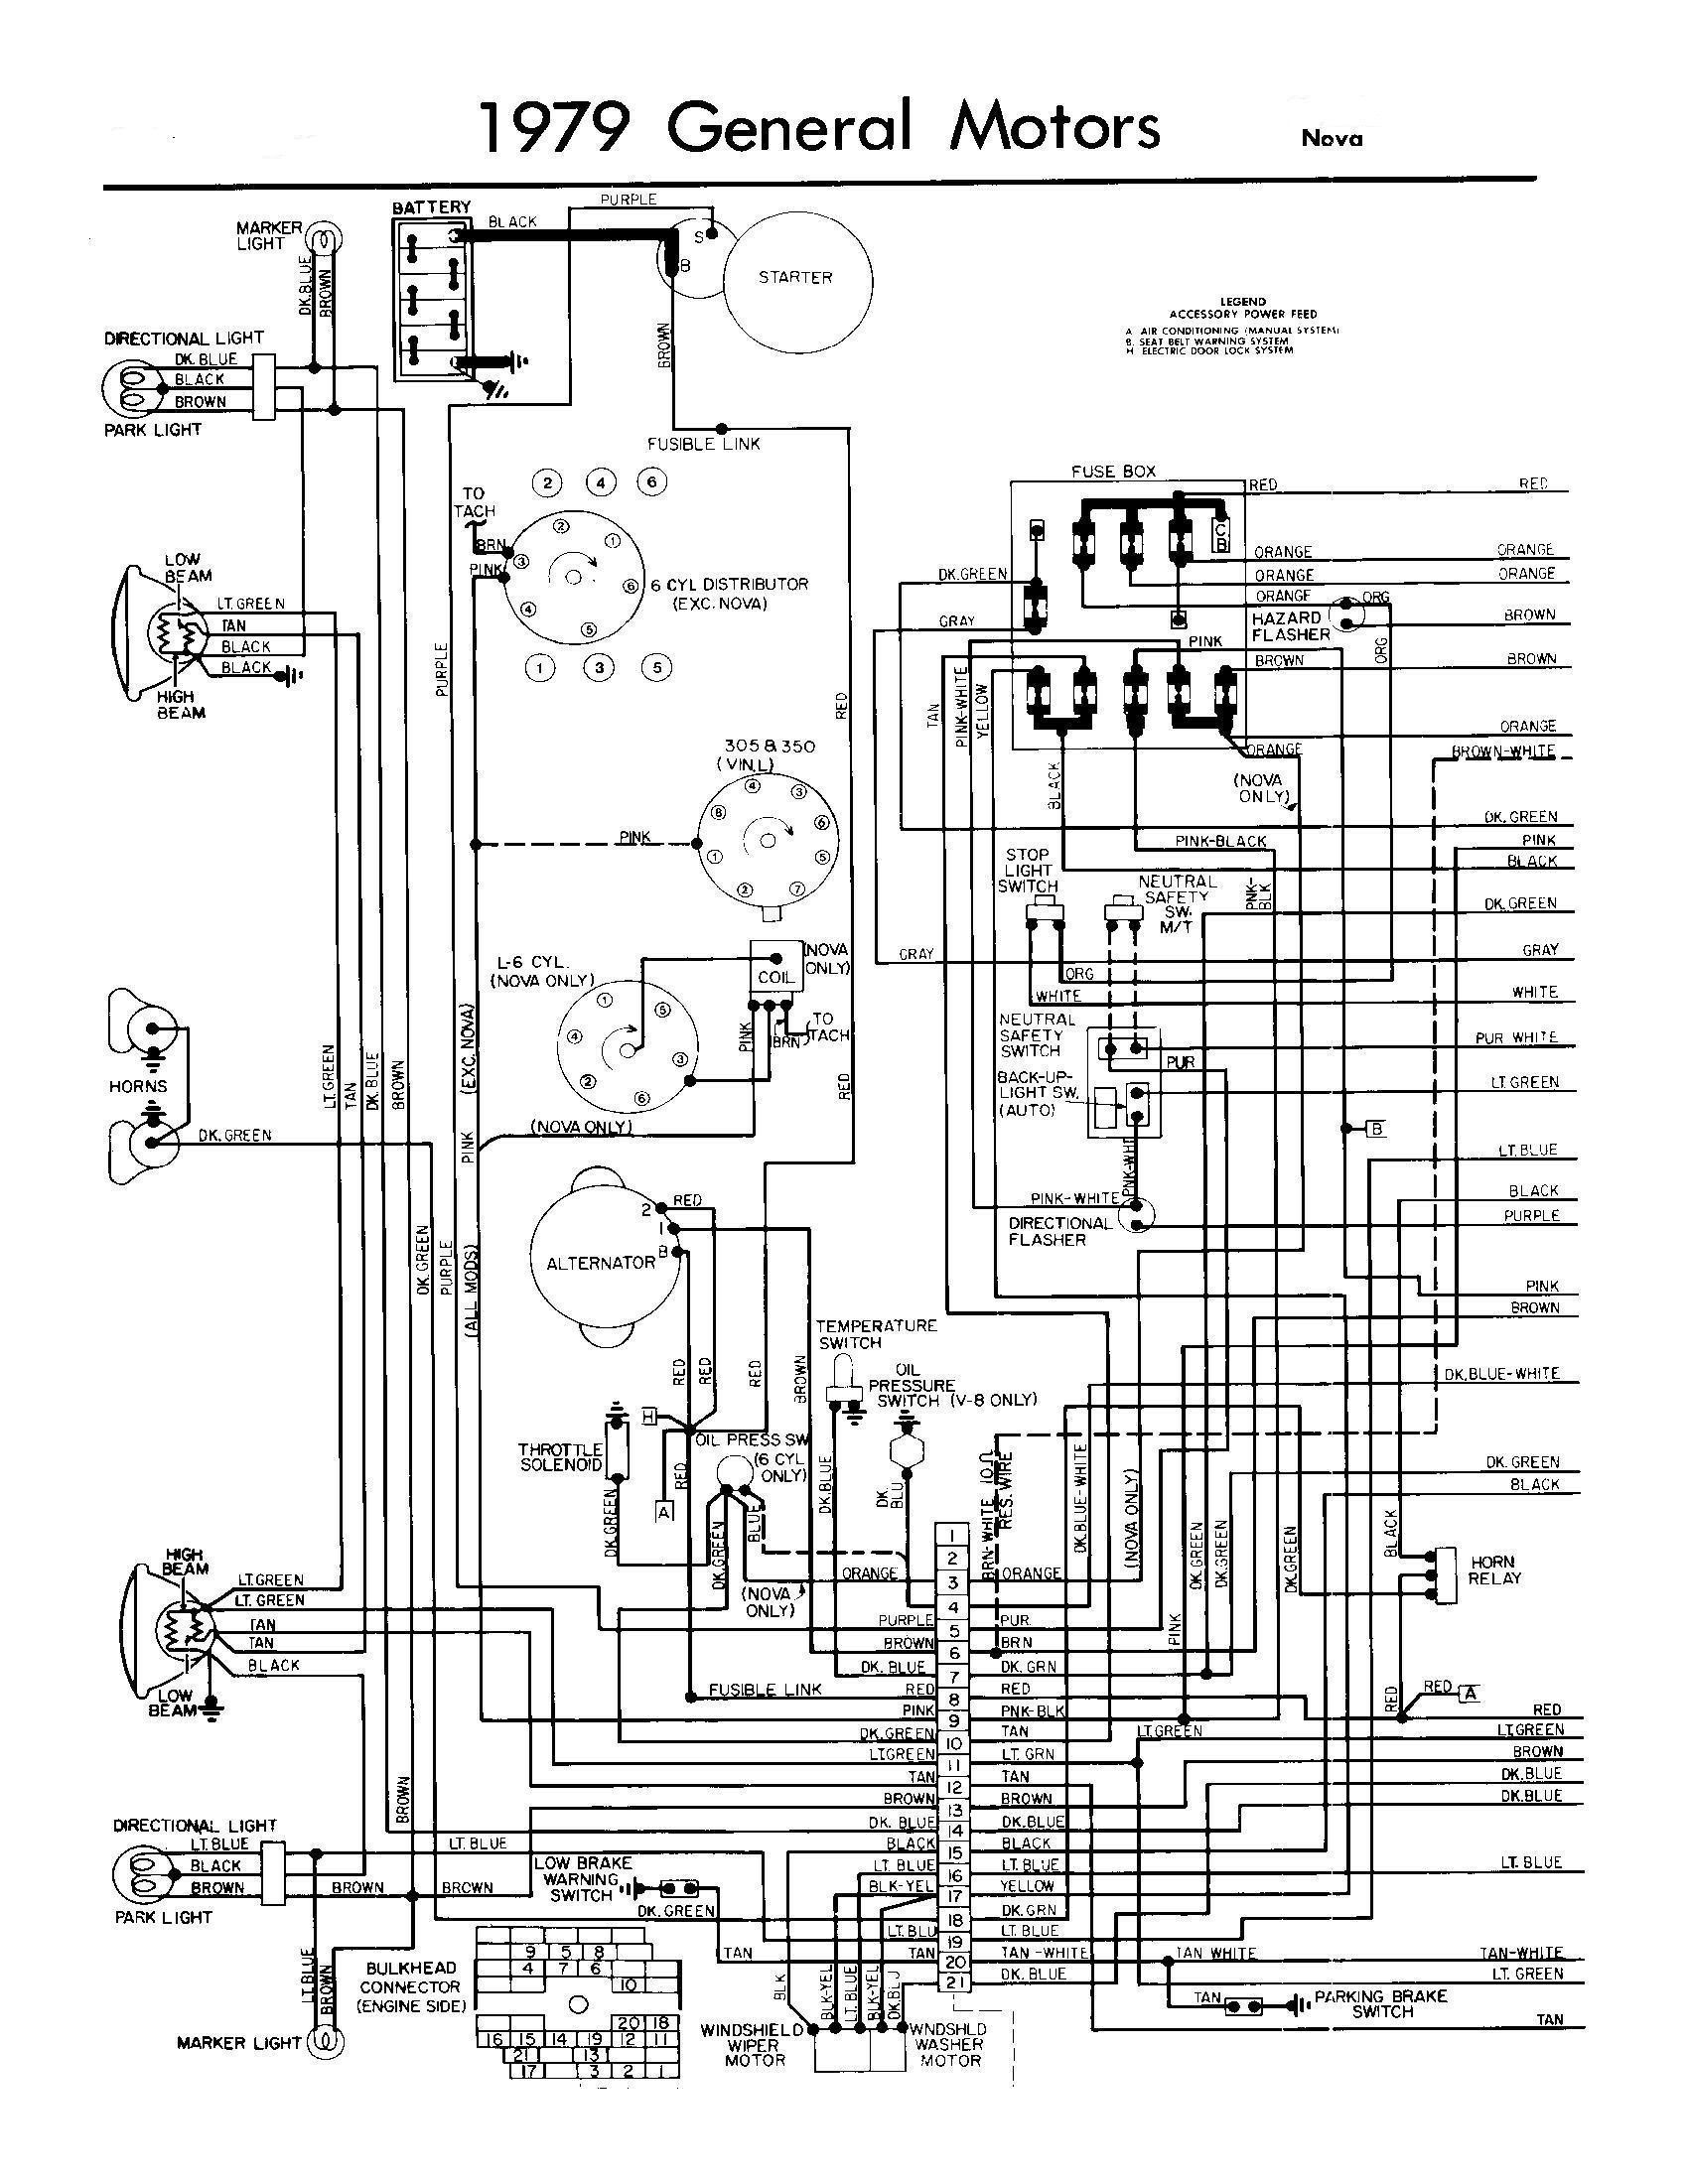 1979 trans am vacuum diagram jeep cherokee fuse box diagram 1972 rh sellfie co